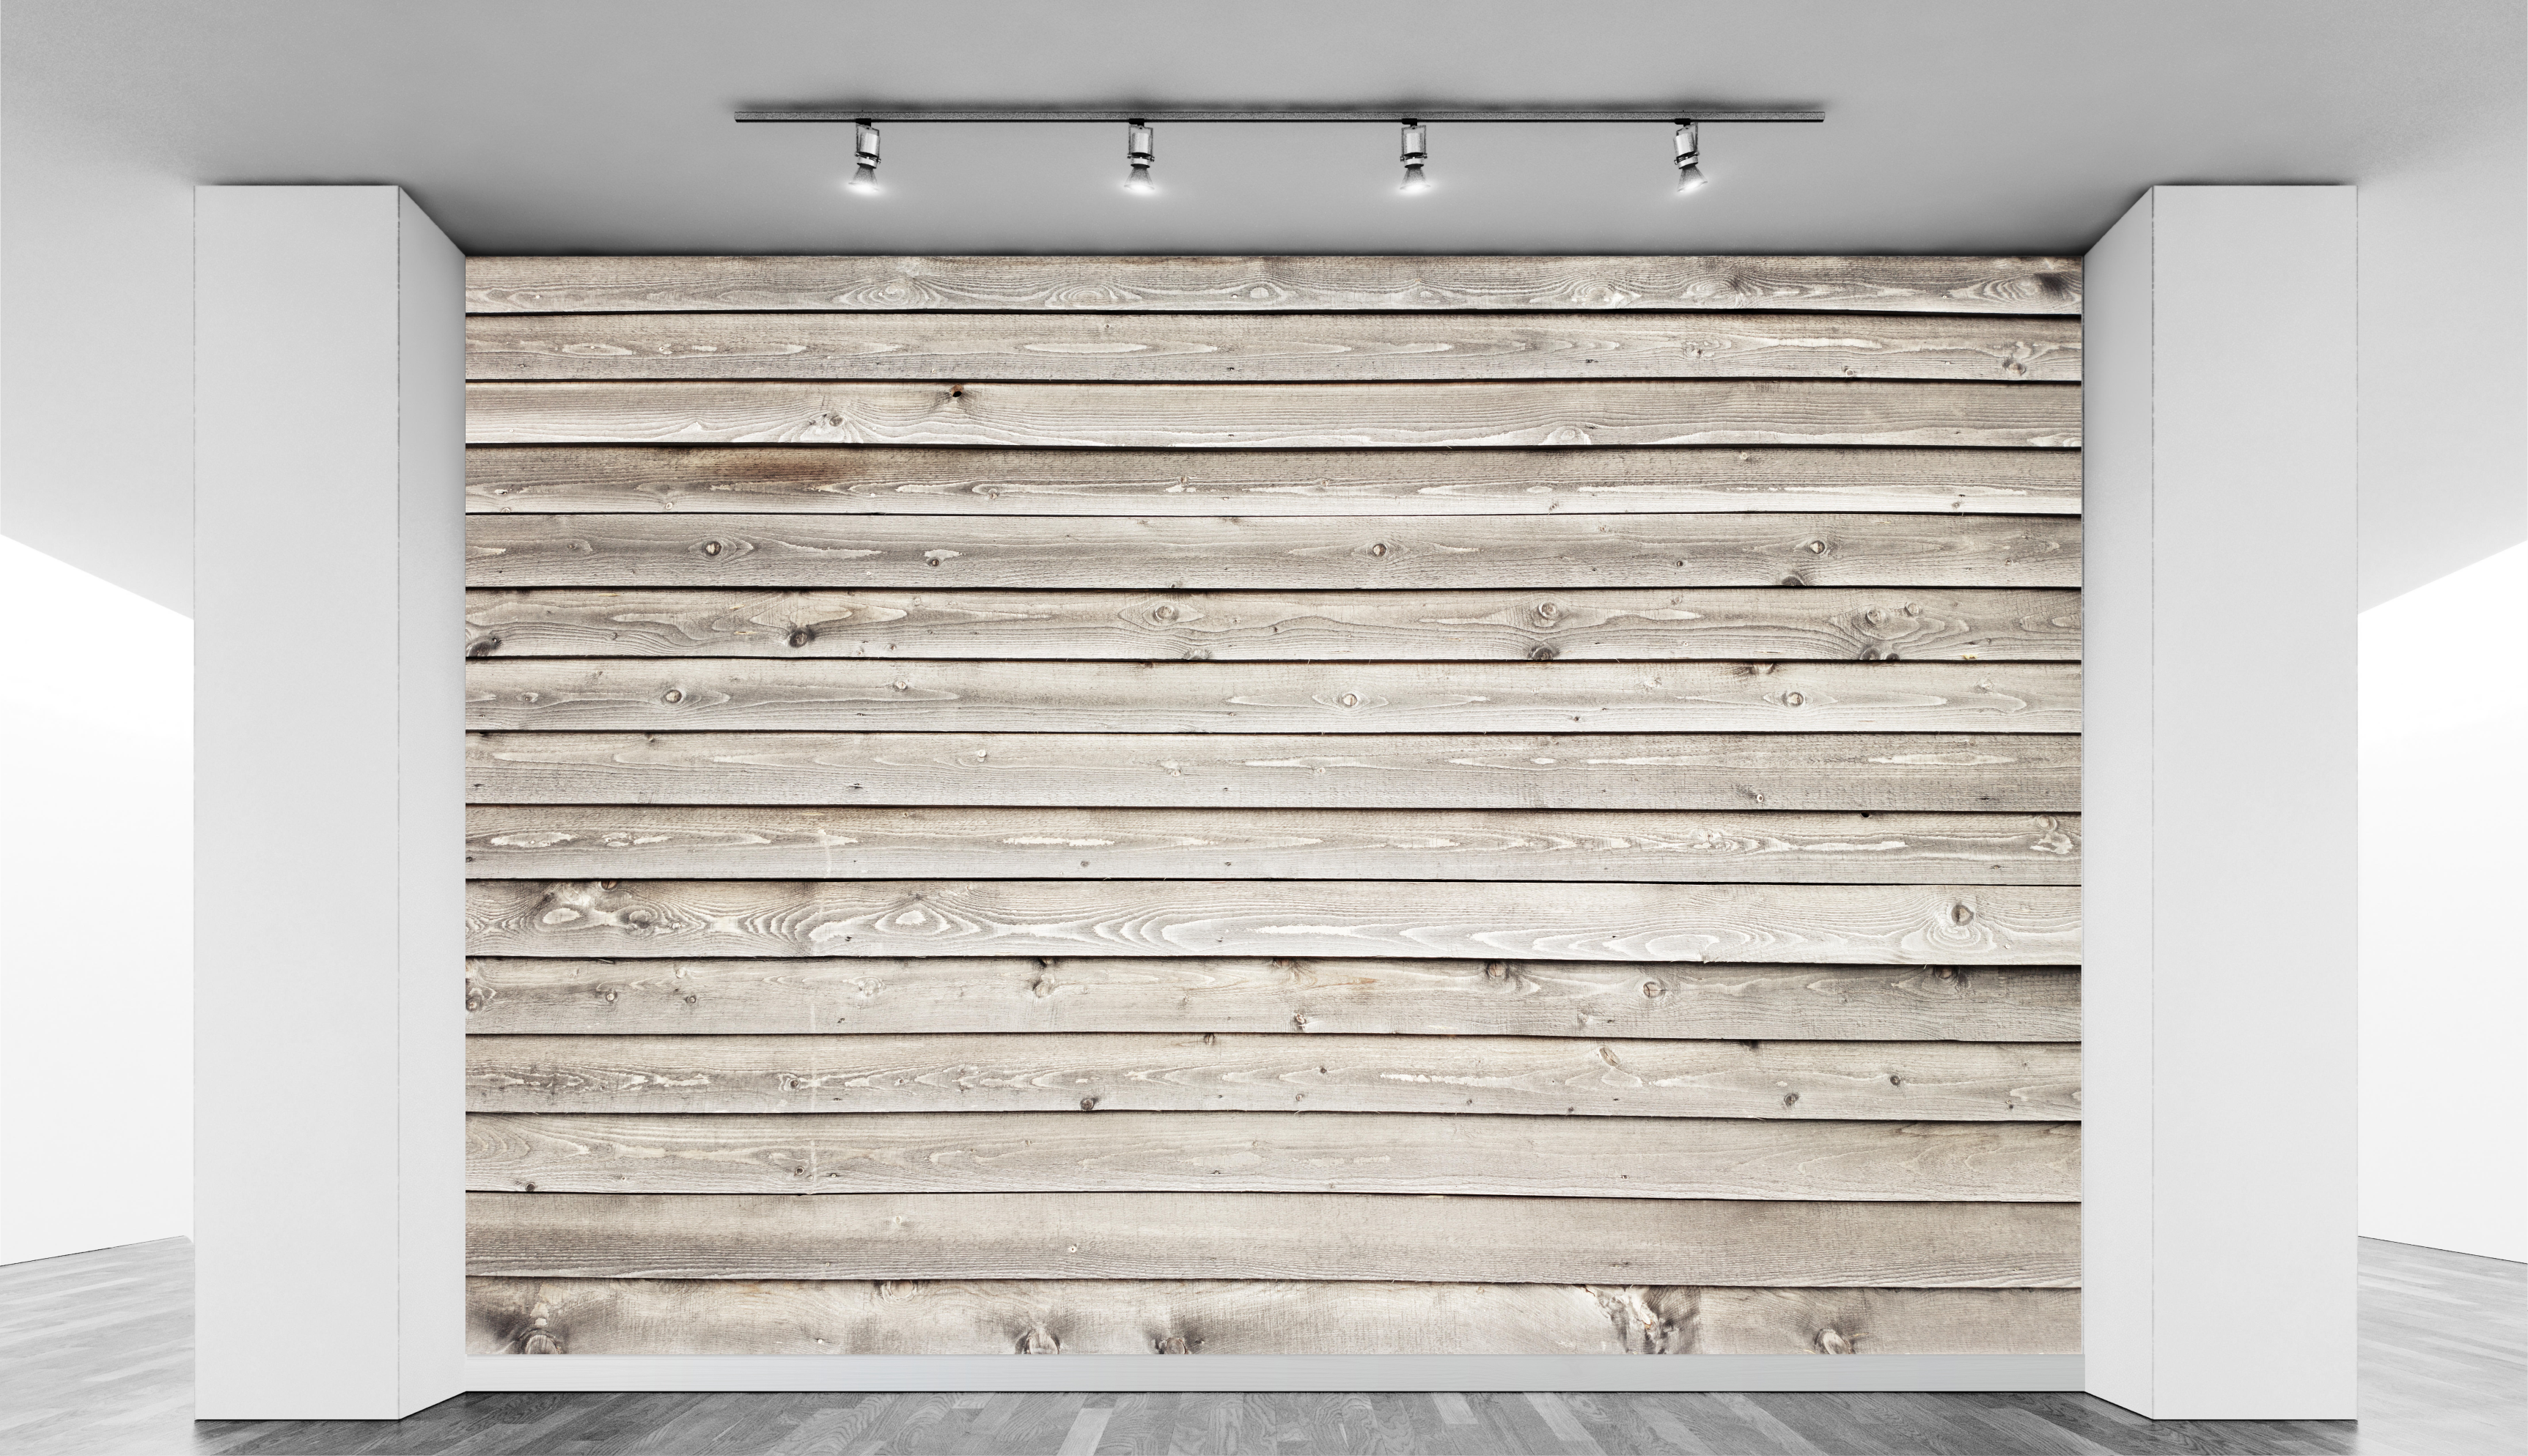 Wooden slat wall